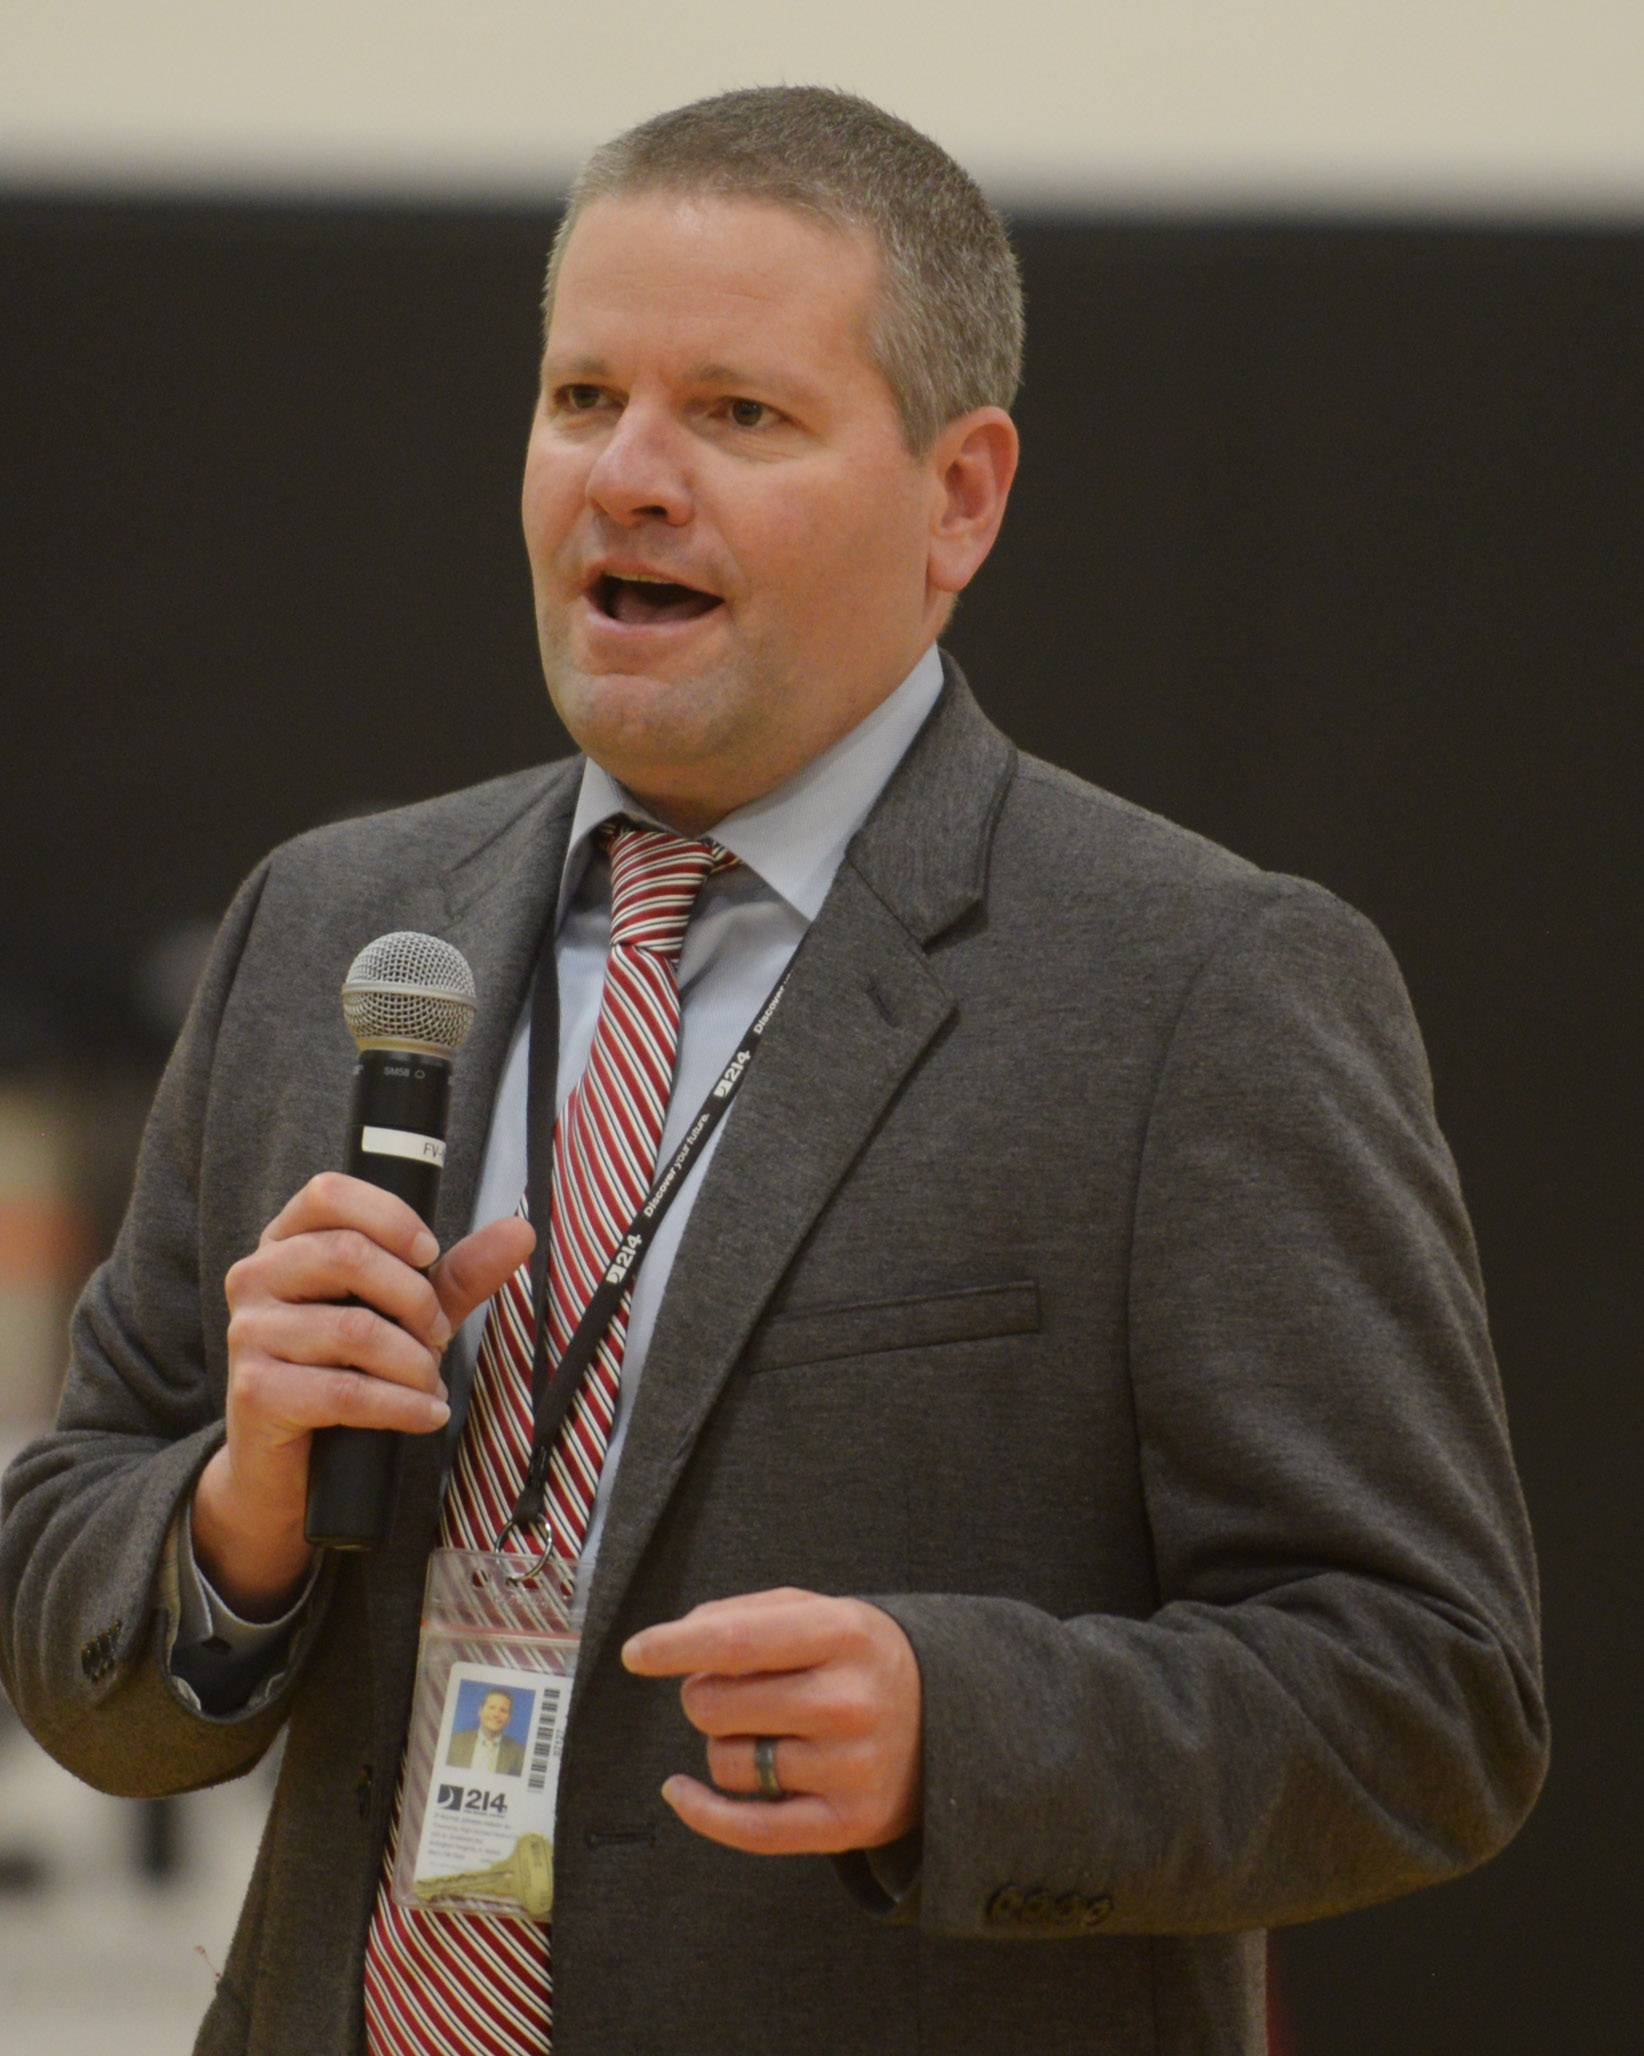 Northwest Suburban High School District 214 Superintendent David R. Schuler speaks to 110 students who gathered to sign letters of intent to become teachers as part of an Educator Prep event Thursday at Forest View Education Center in Arlington Heights.